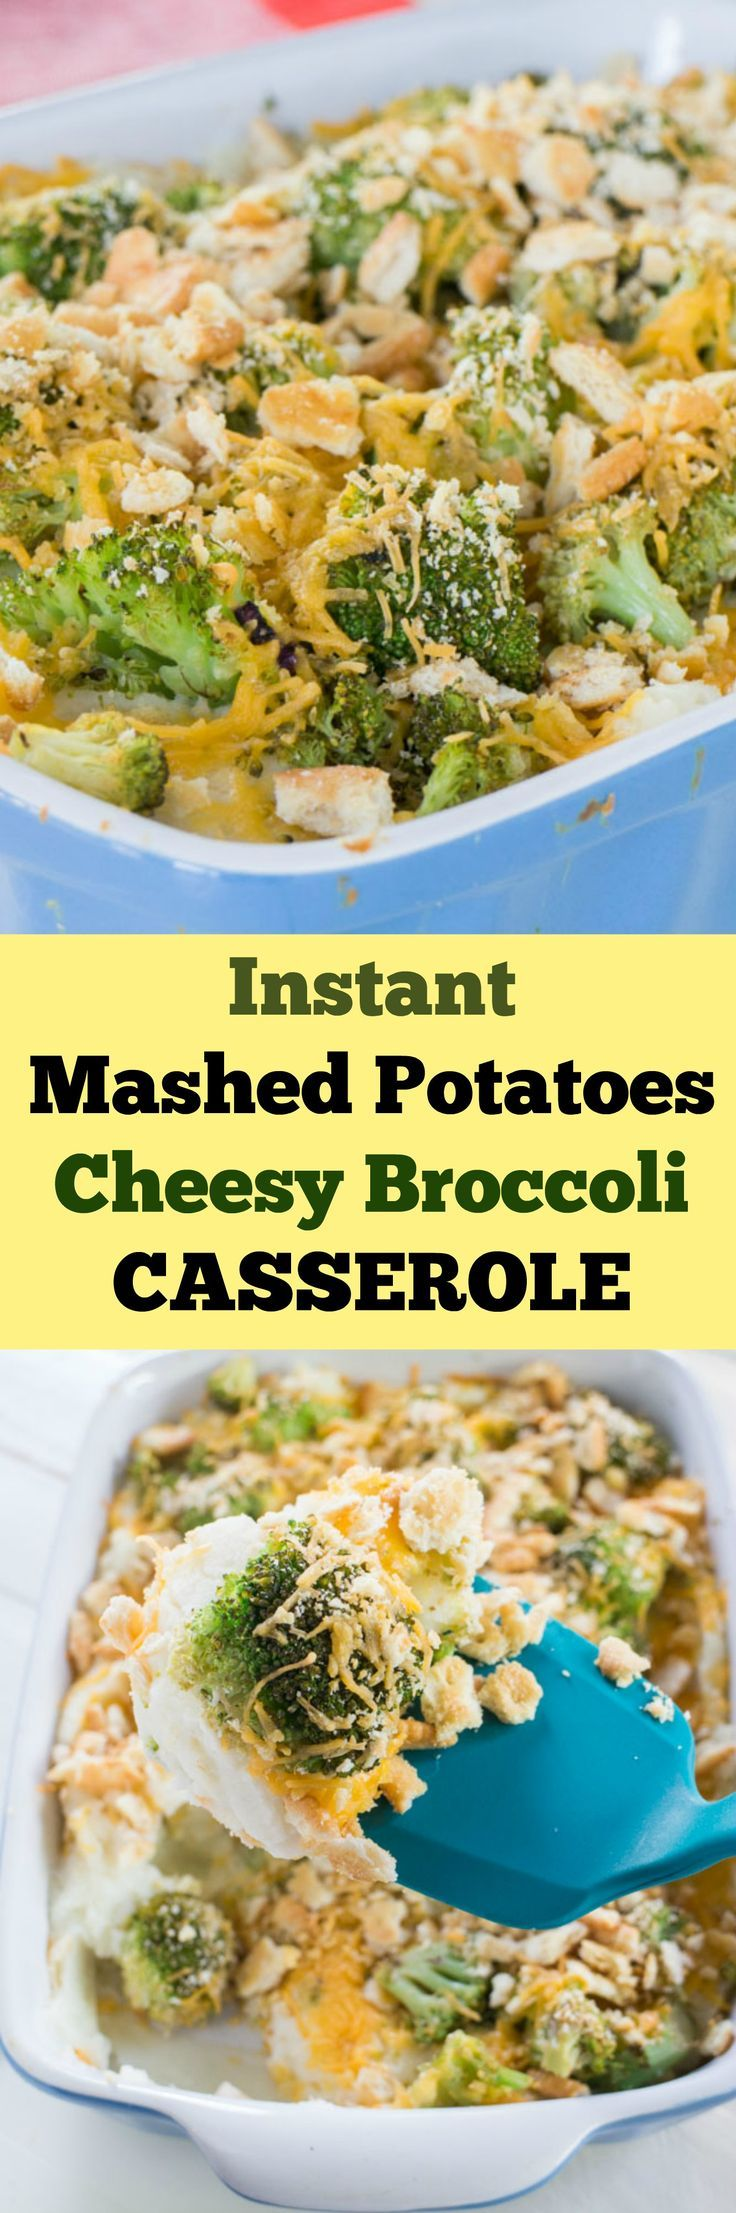 Instant Mashed Potatoes Cheesy Broccoli Casserole is a comfort food dish that will have your entire family begging for more! It uses Instant Mashed Potatoes so it's easy to make. It's the perfect side dish for the holidays because it's cheesy and deliciou